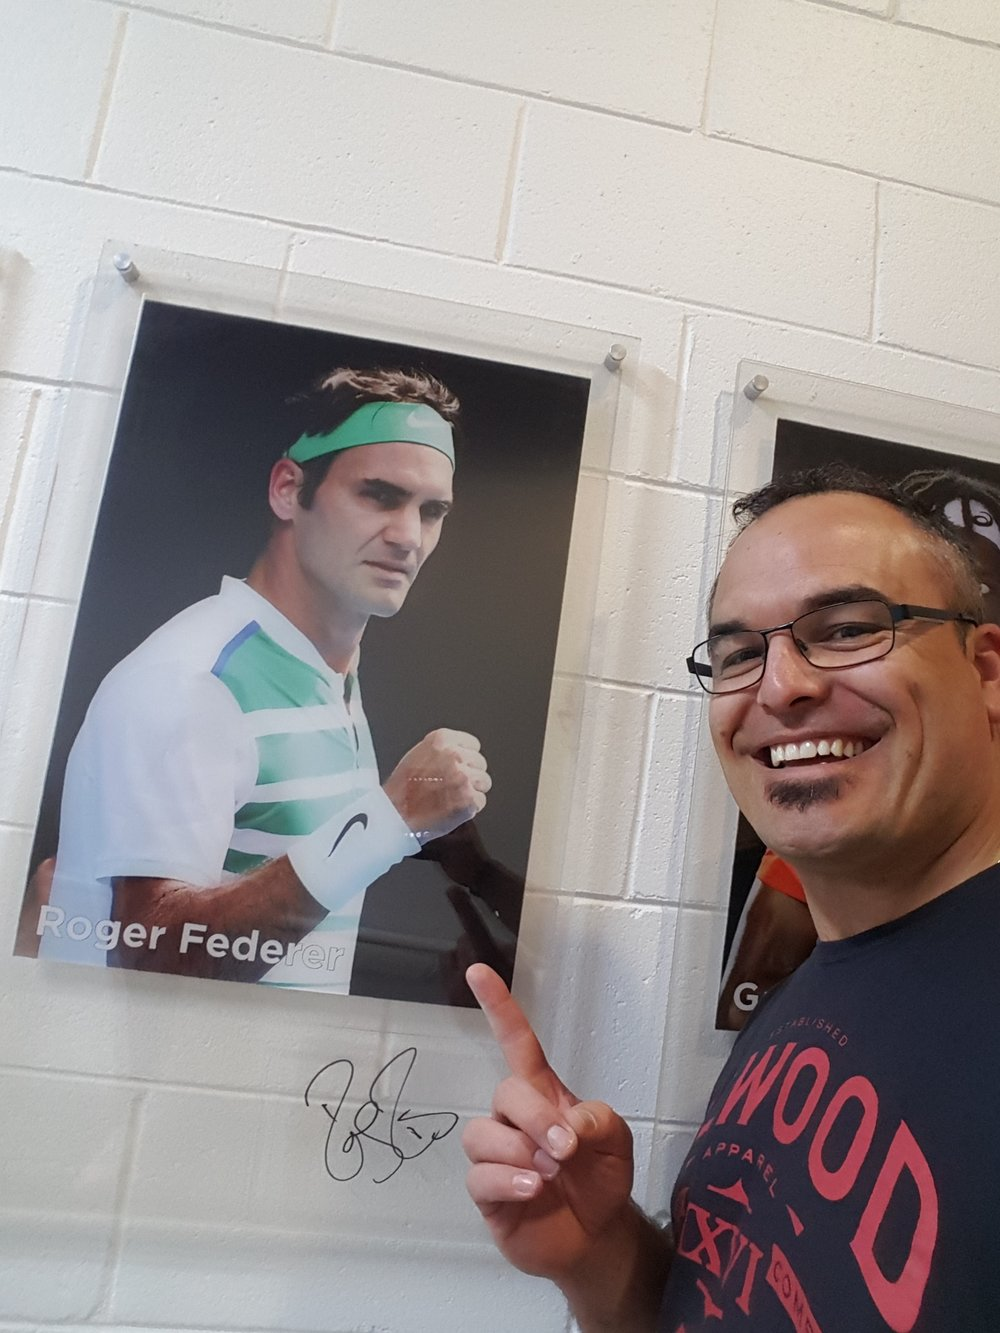 2016 Oct 13 Trent Batchelor on tour with Federer.jpg